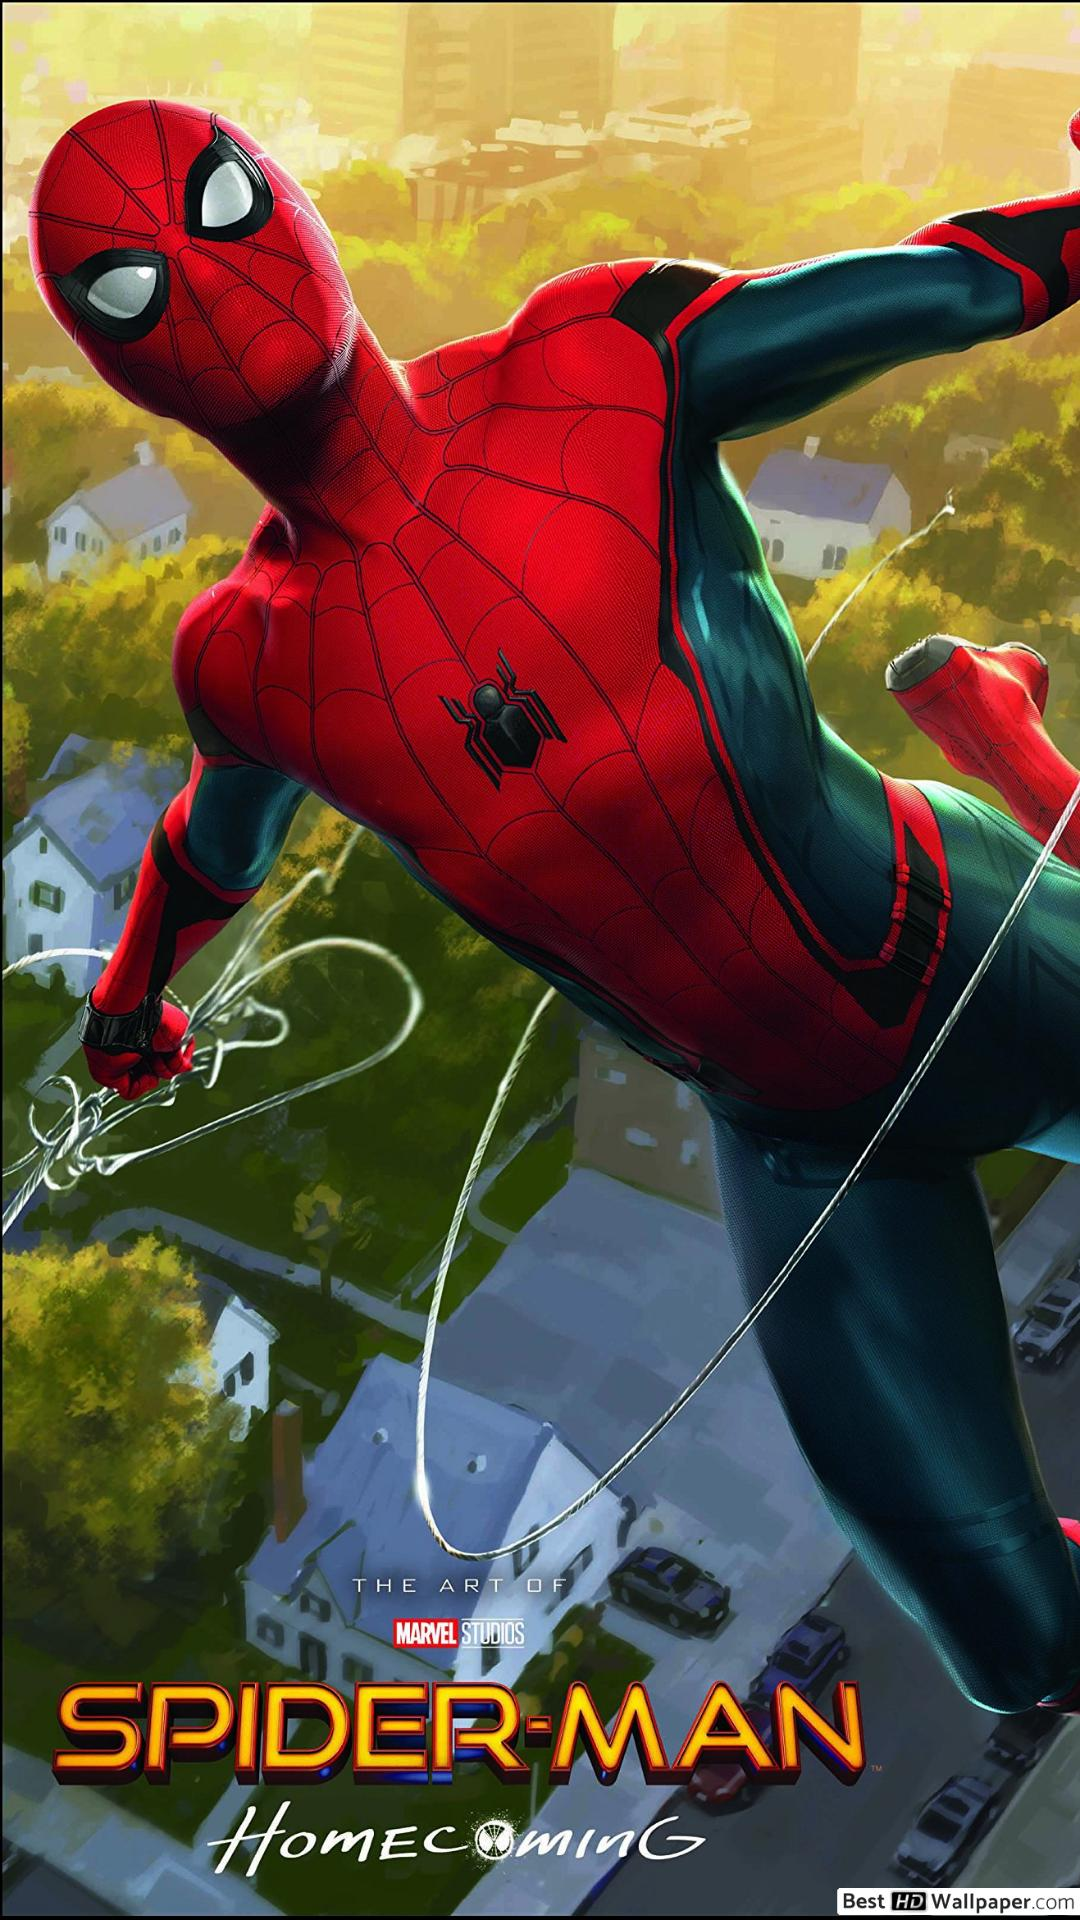 Apple Iphone 7 Plus   Spider Man Homecoming 9 11 Wallpaper 1080x1920